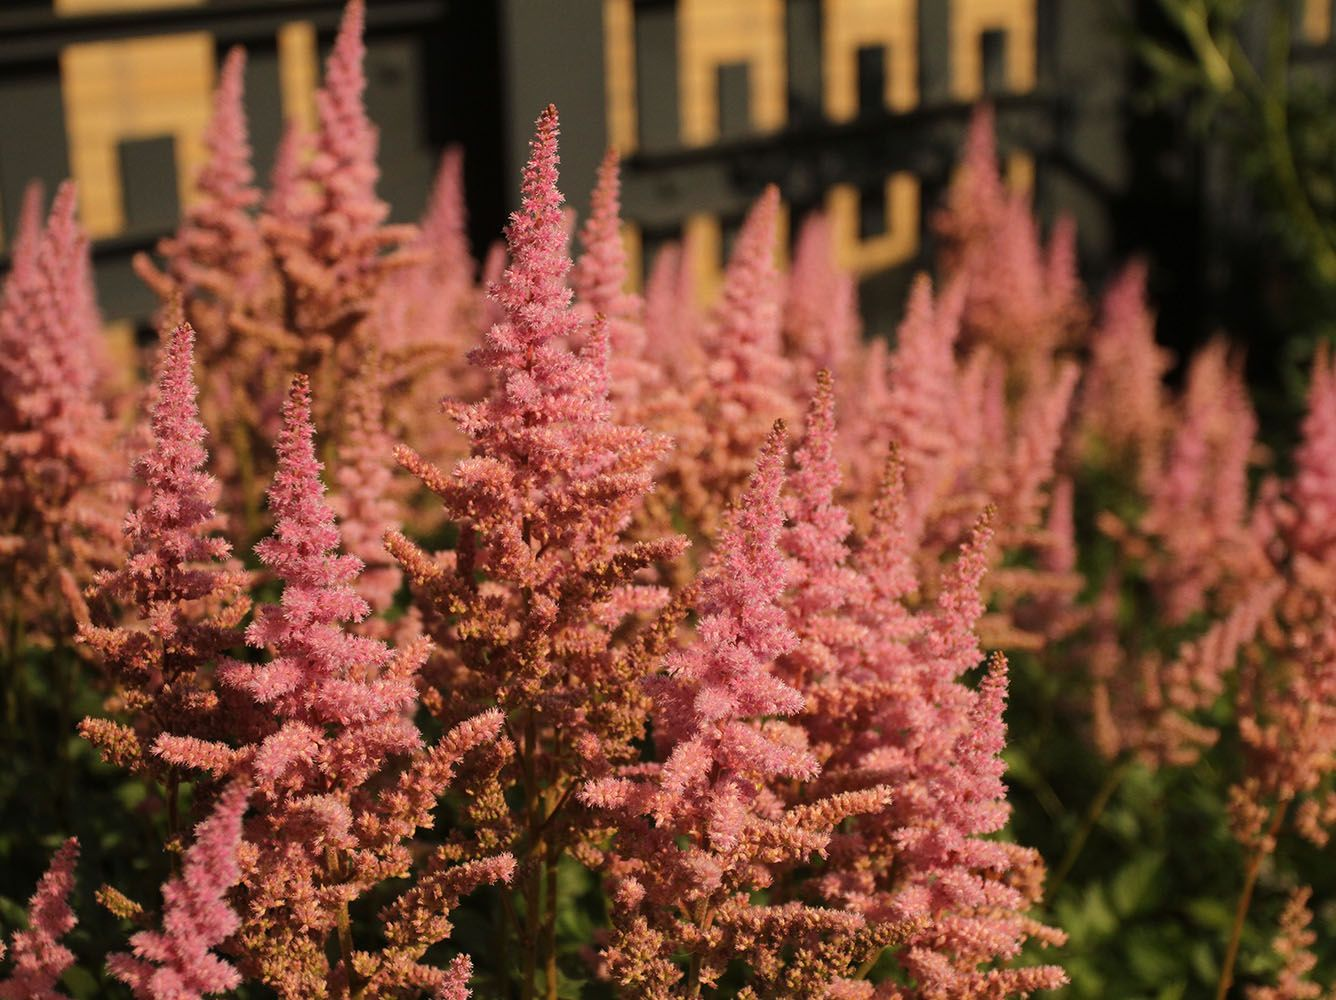 Plant Of The Week Visions In Pink Astilbe The High Line Blog Plants Astilbe Perennials